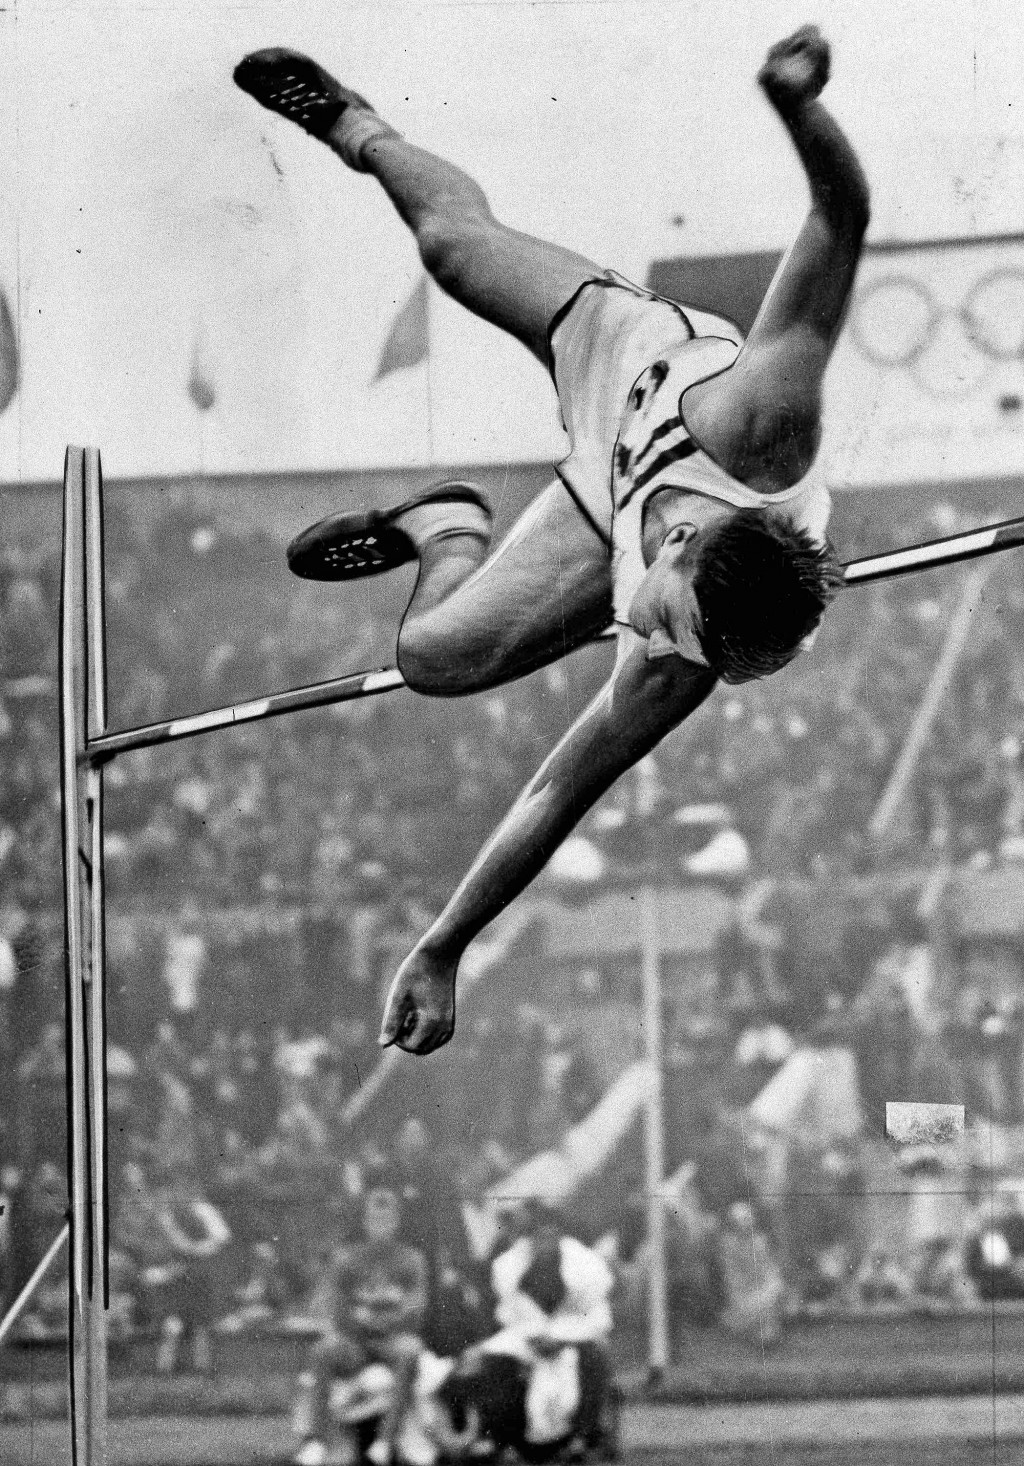 FILE - In this Aug. 5, 1948 file photo Bob Mathias of Tulare, Calif., clears the high jump bar at Wembley Stadium in London, in the decathlon competit...